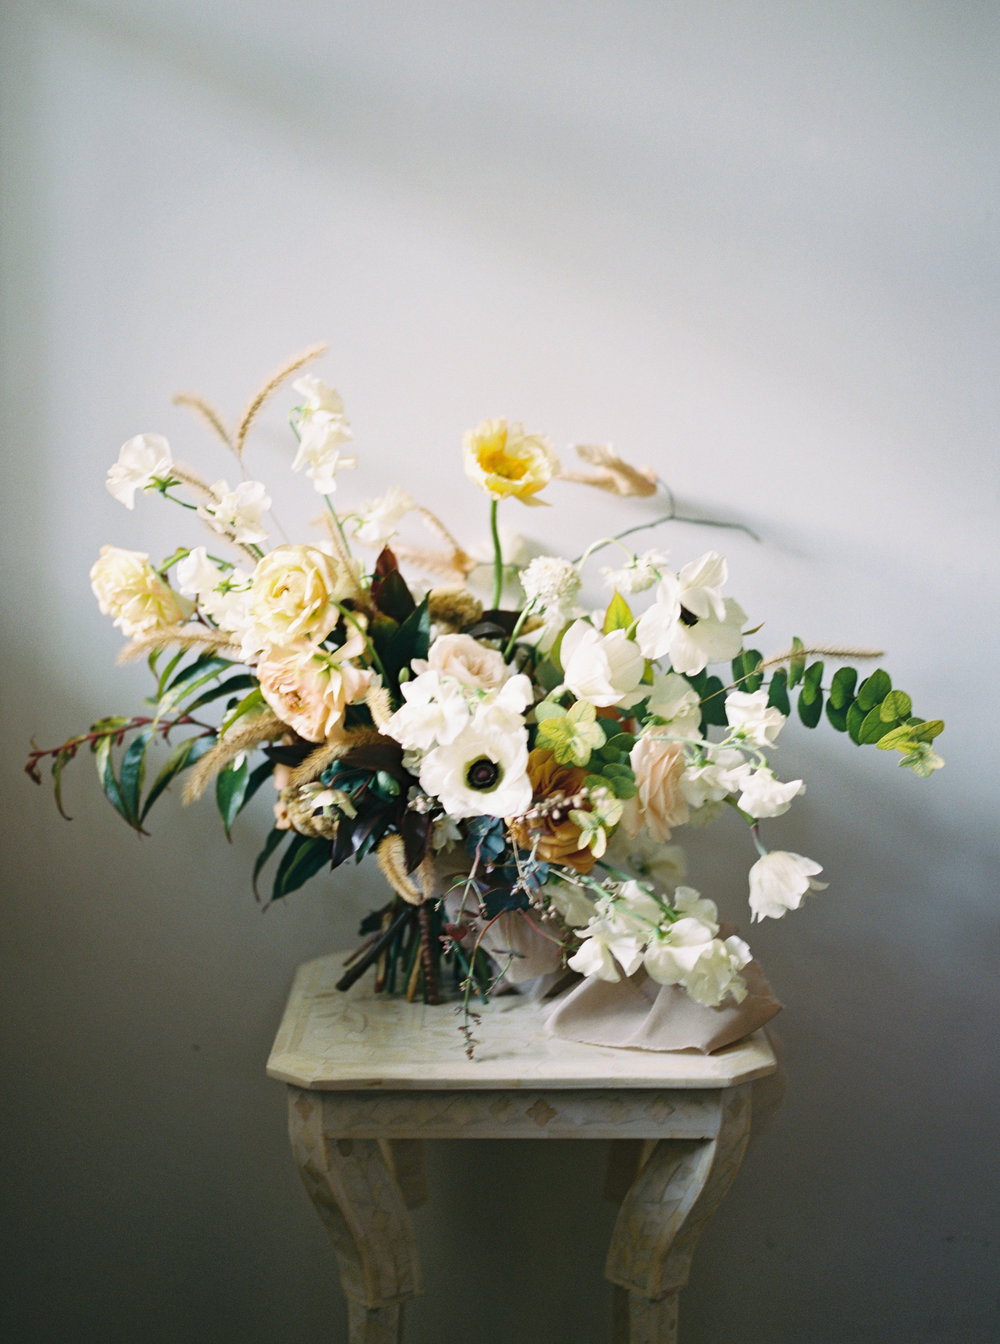 fine art floral design by Kelly Lenard at Foxfire Mountain House